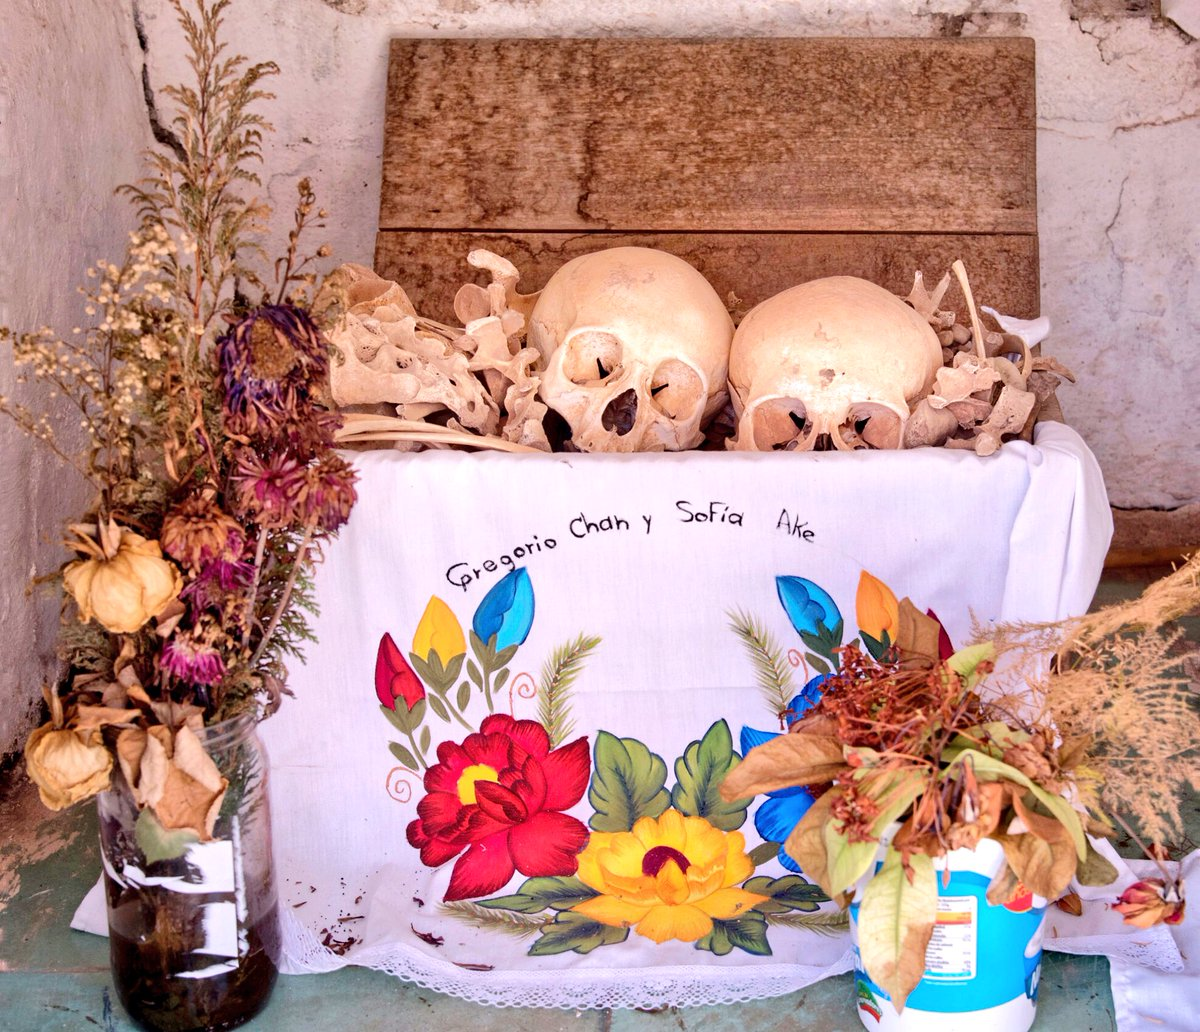 Dust off your skeletons: Welcome to the Mexican towns that clean their dearly departed